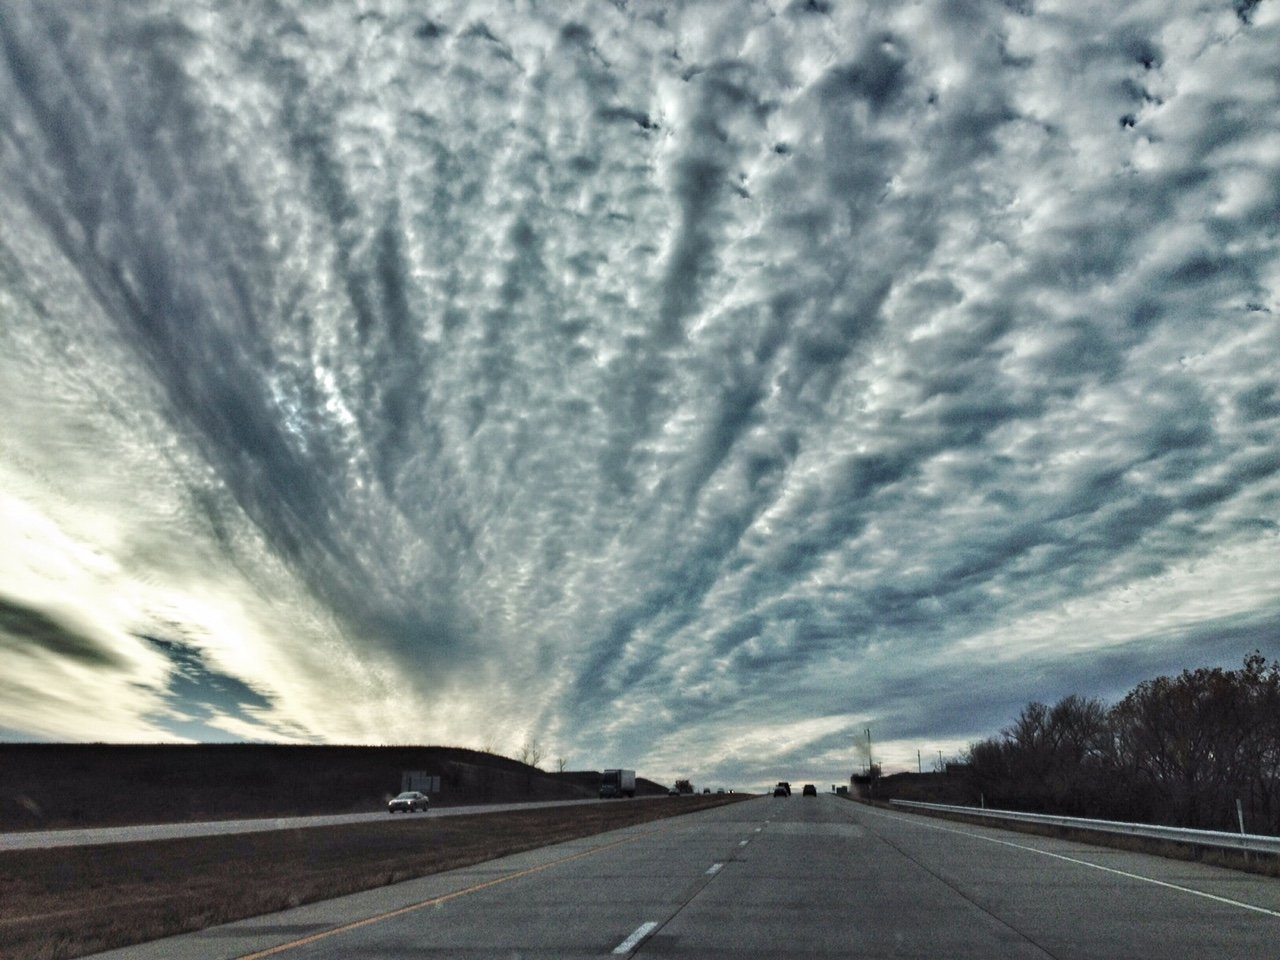 Strange-looking clouds out west, along Interstate 70 (Photo by J. Schafer)